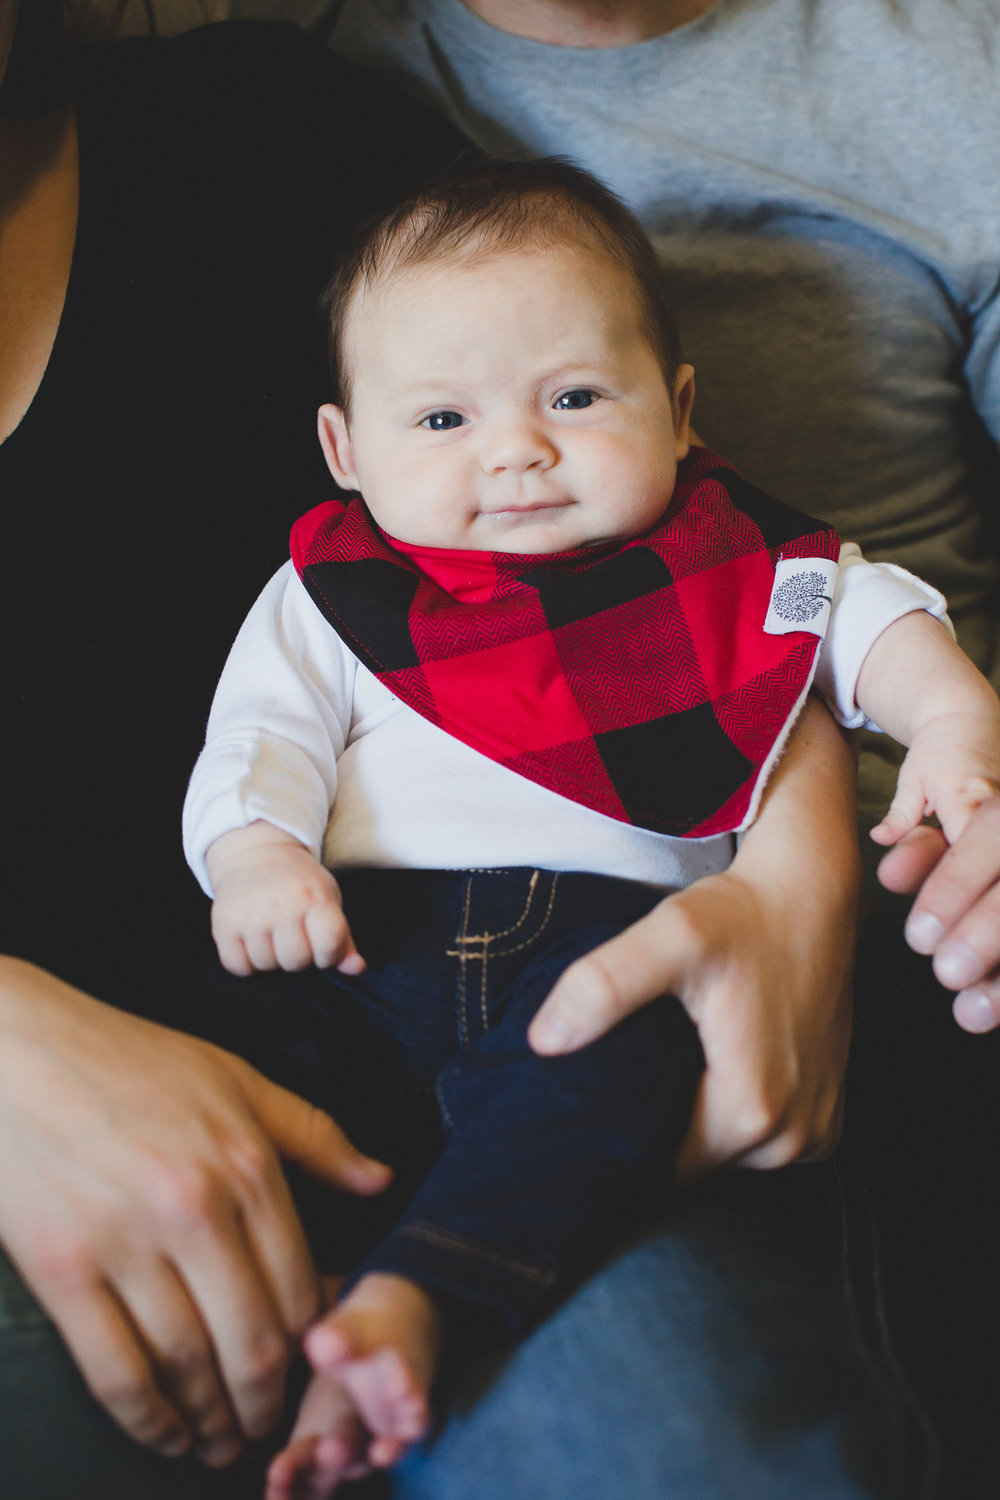 Jordan Edens Photography_tri cities photographer_kennewick photographer_richland photographer_tri cities family photographer_tri cities lifestyle photographer_family photos_baby photos_memories and milestones_lifestyle newborn session_tri cities in home photo session_3